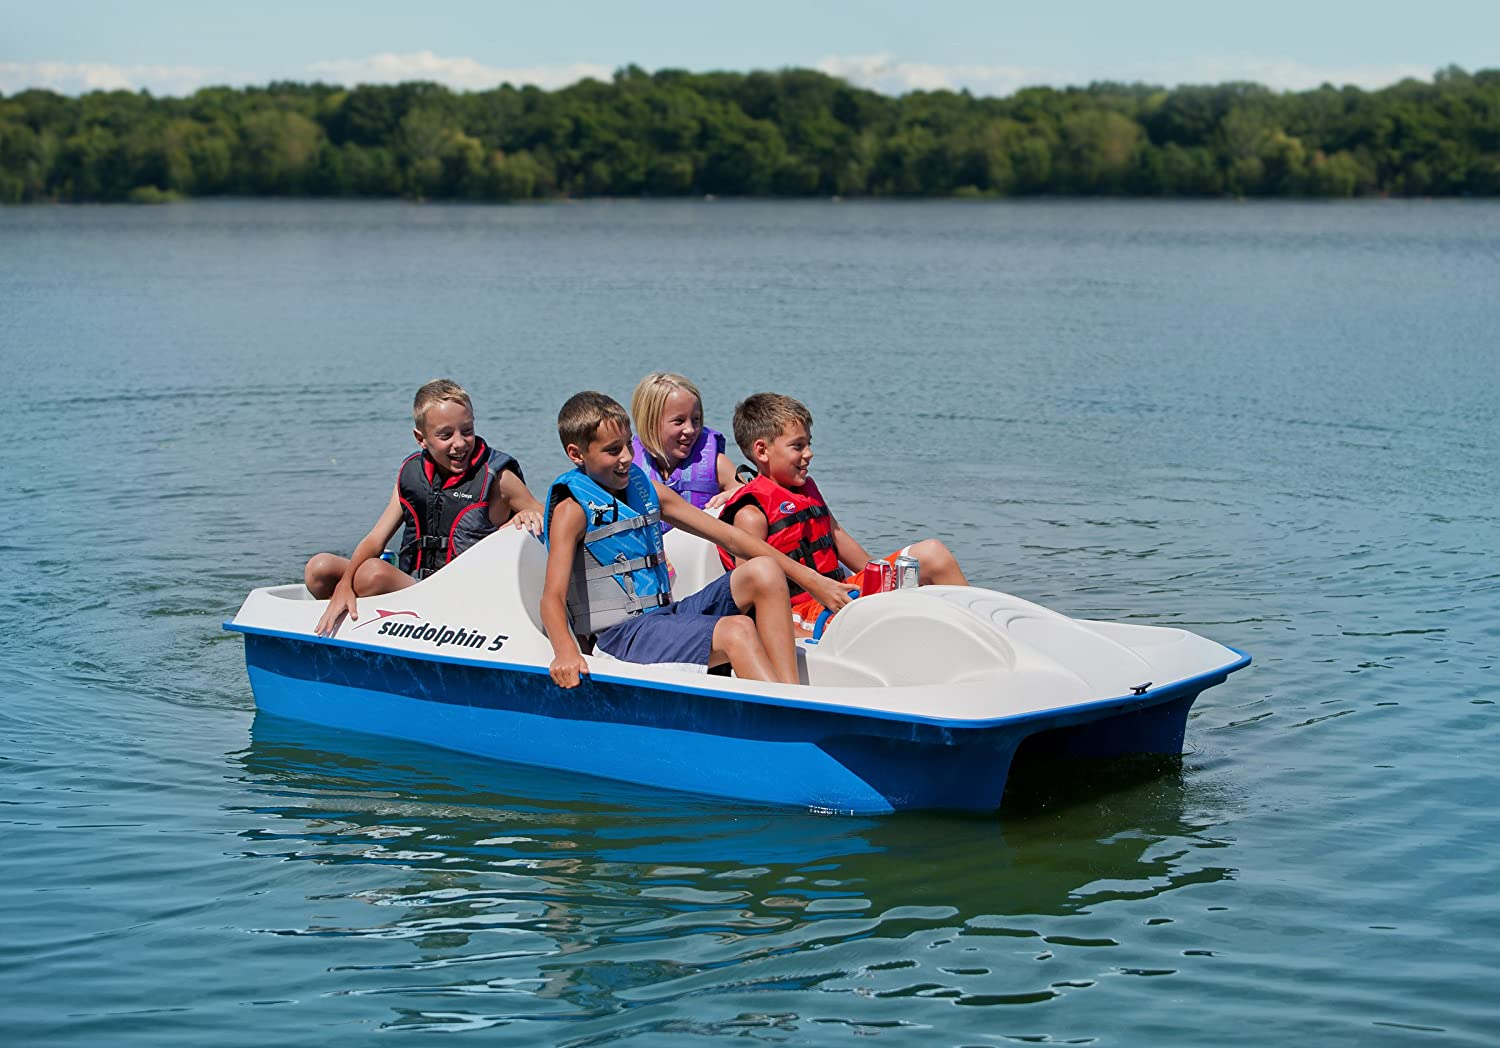 Amazon.com  Sun Dolphin 5 Seat Pedal Boat (Blue)  Kids Paddle Boat  Sports u0026 Outdoors & Amazon.com : Sun Dolphin 5 Seat Pedal Boat (Blue) : Kids Paddle ...